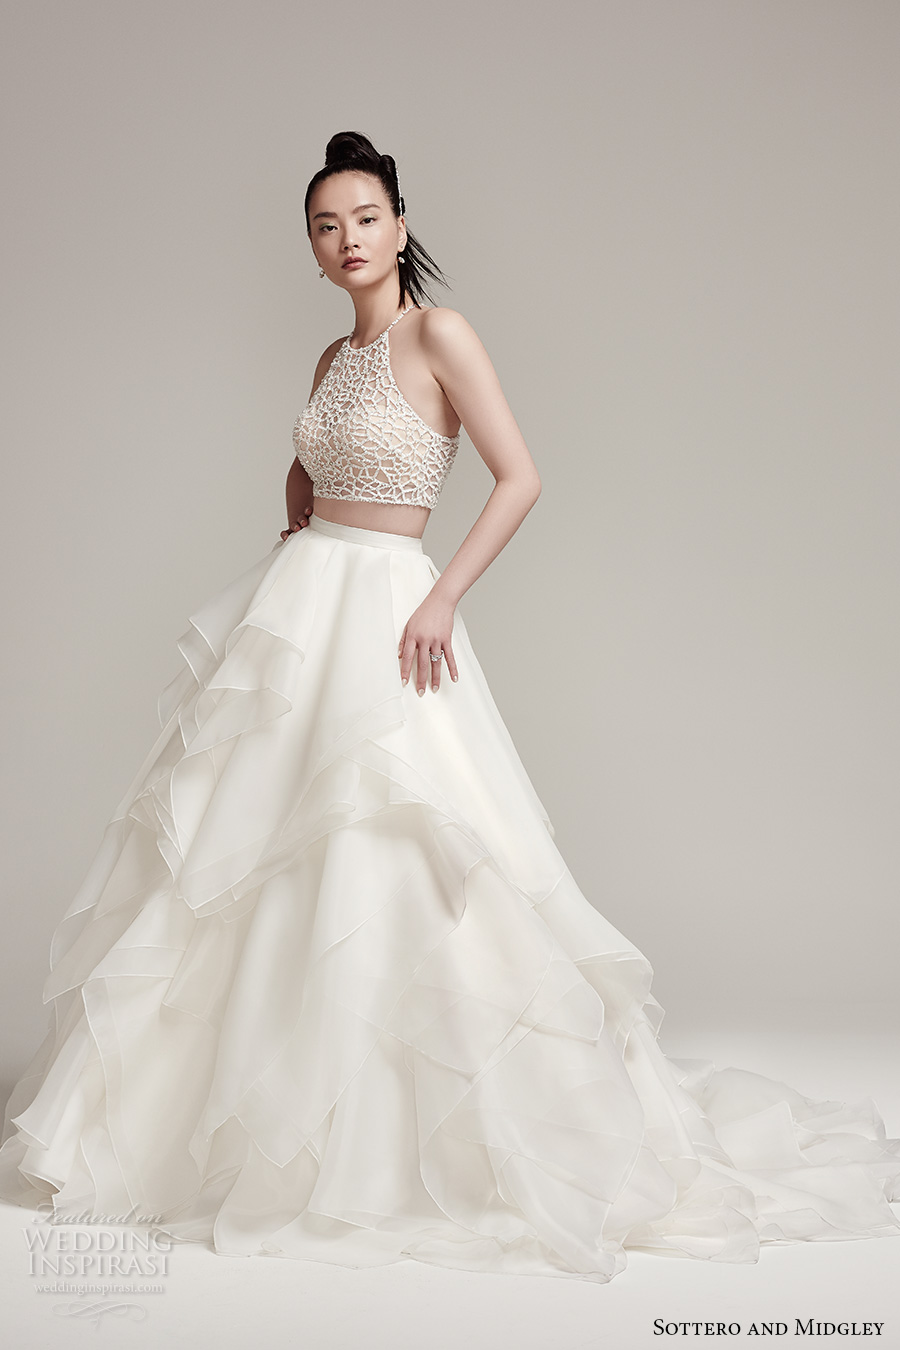 Sottero Midgley Fall 2016 Bridal Sleeveless Halter Neck Illusion Heavily Embellished Crop Top 2 Piece Tulle